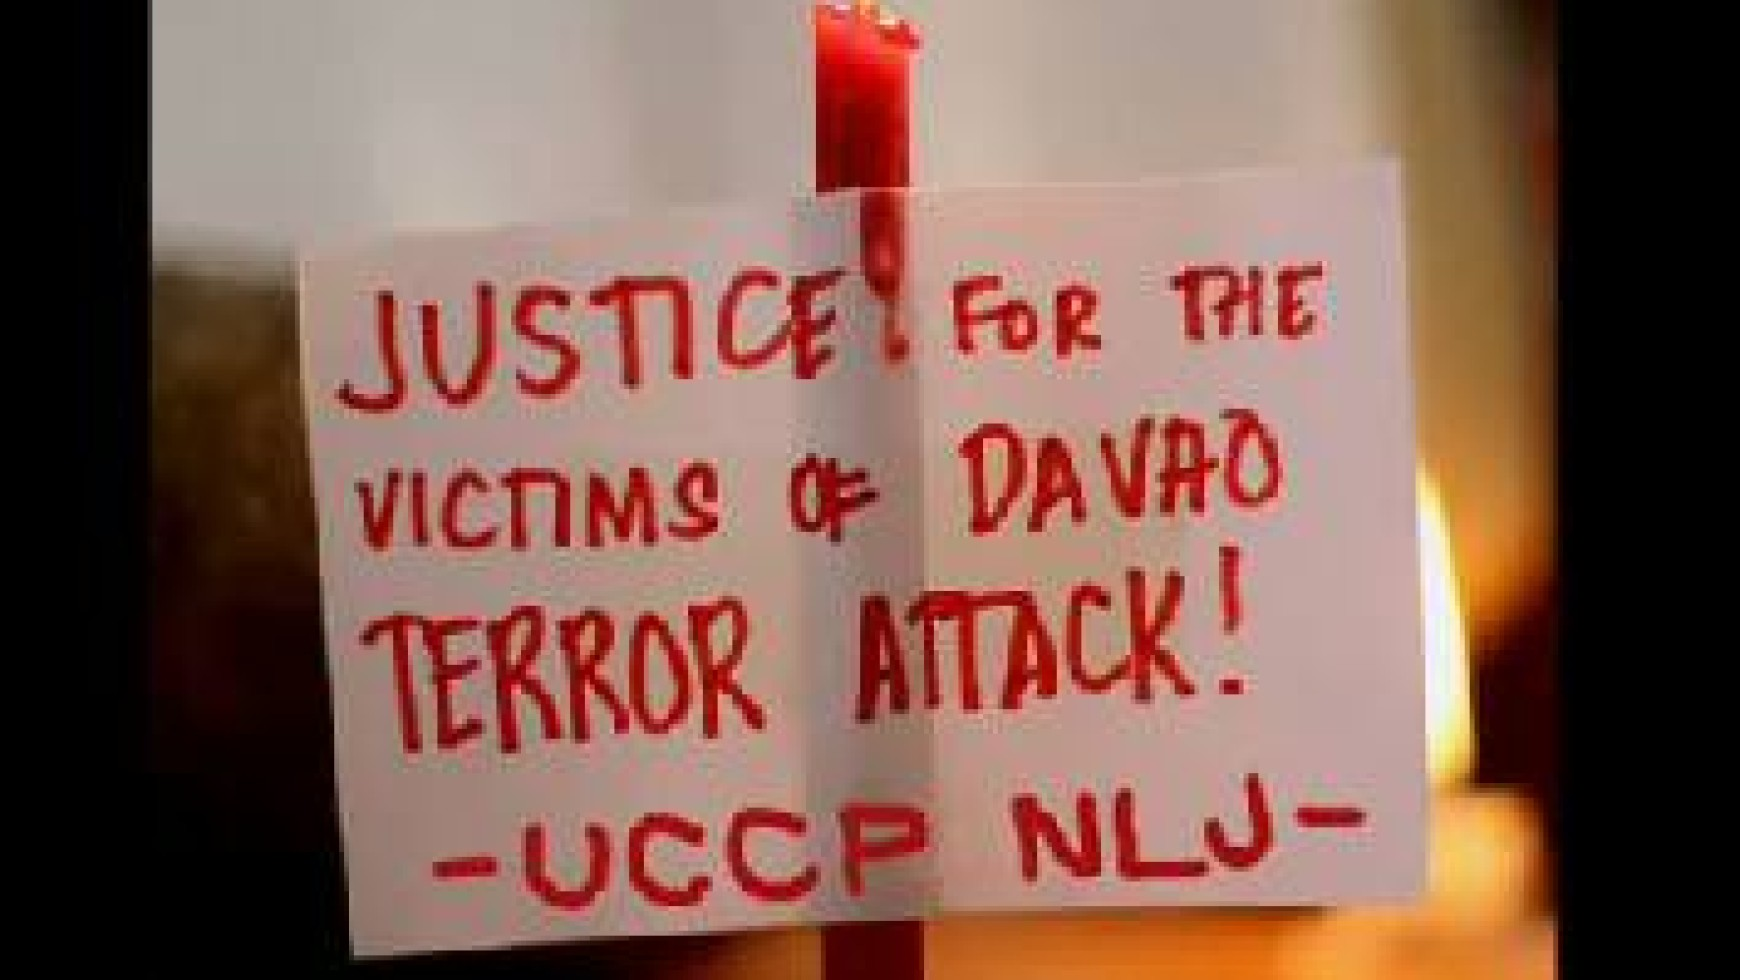 STATEMENT OF THE UCCP-NORTH LUZON JURISDICTION ON DAVAO CITY BOMBING